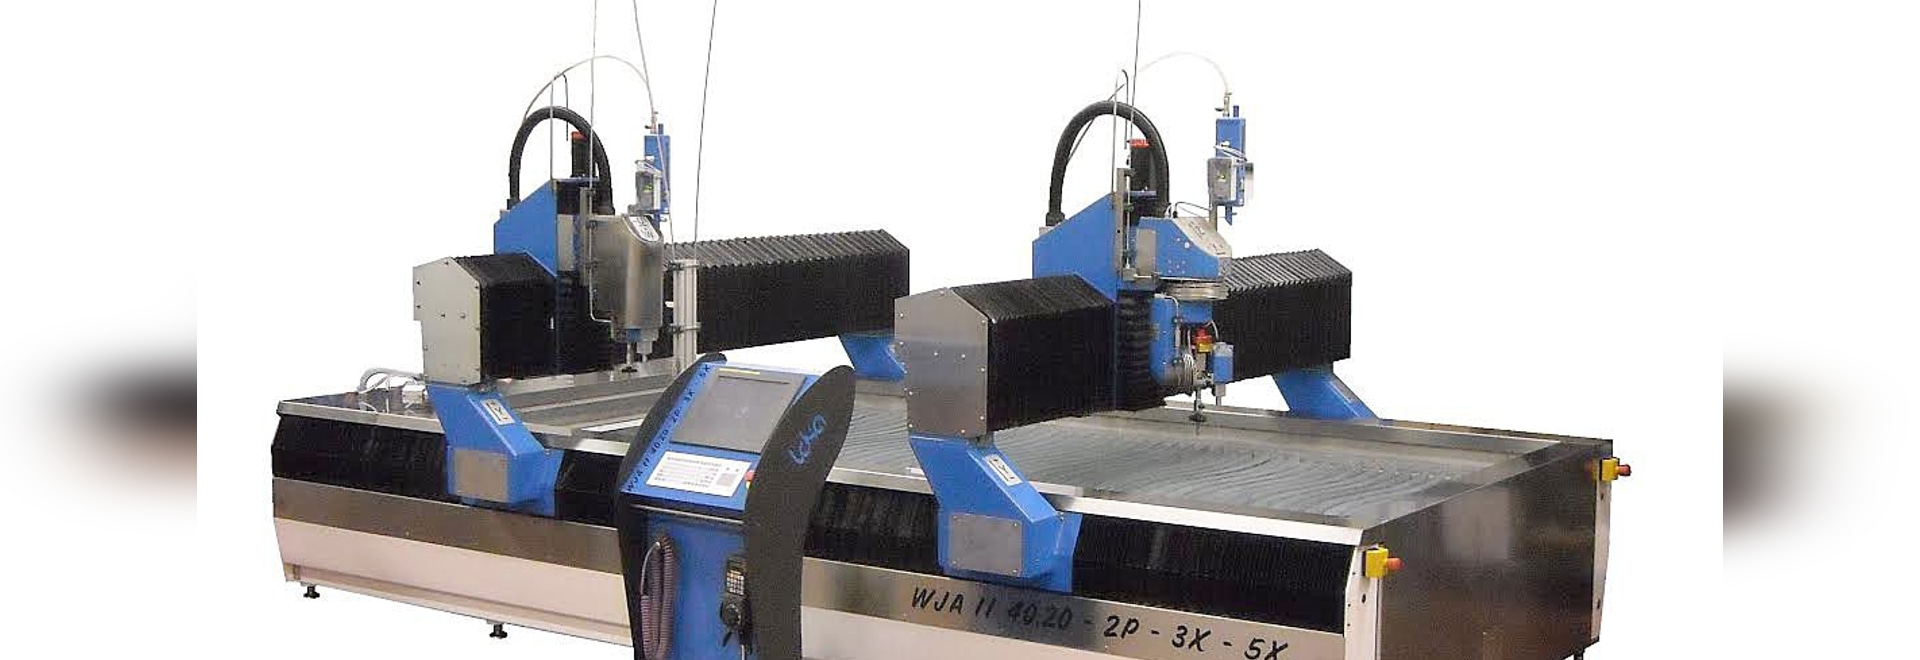 LDSA, the French leader in waterjet cutting machines